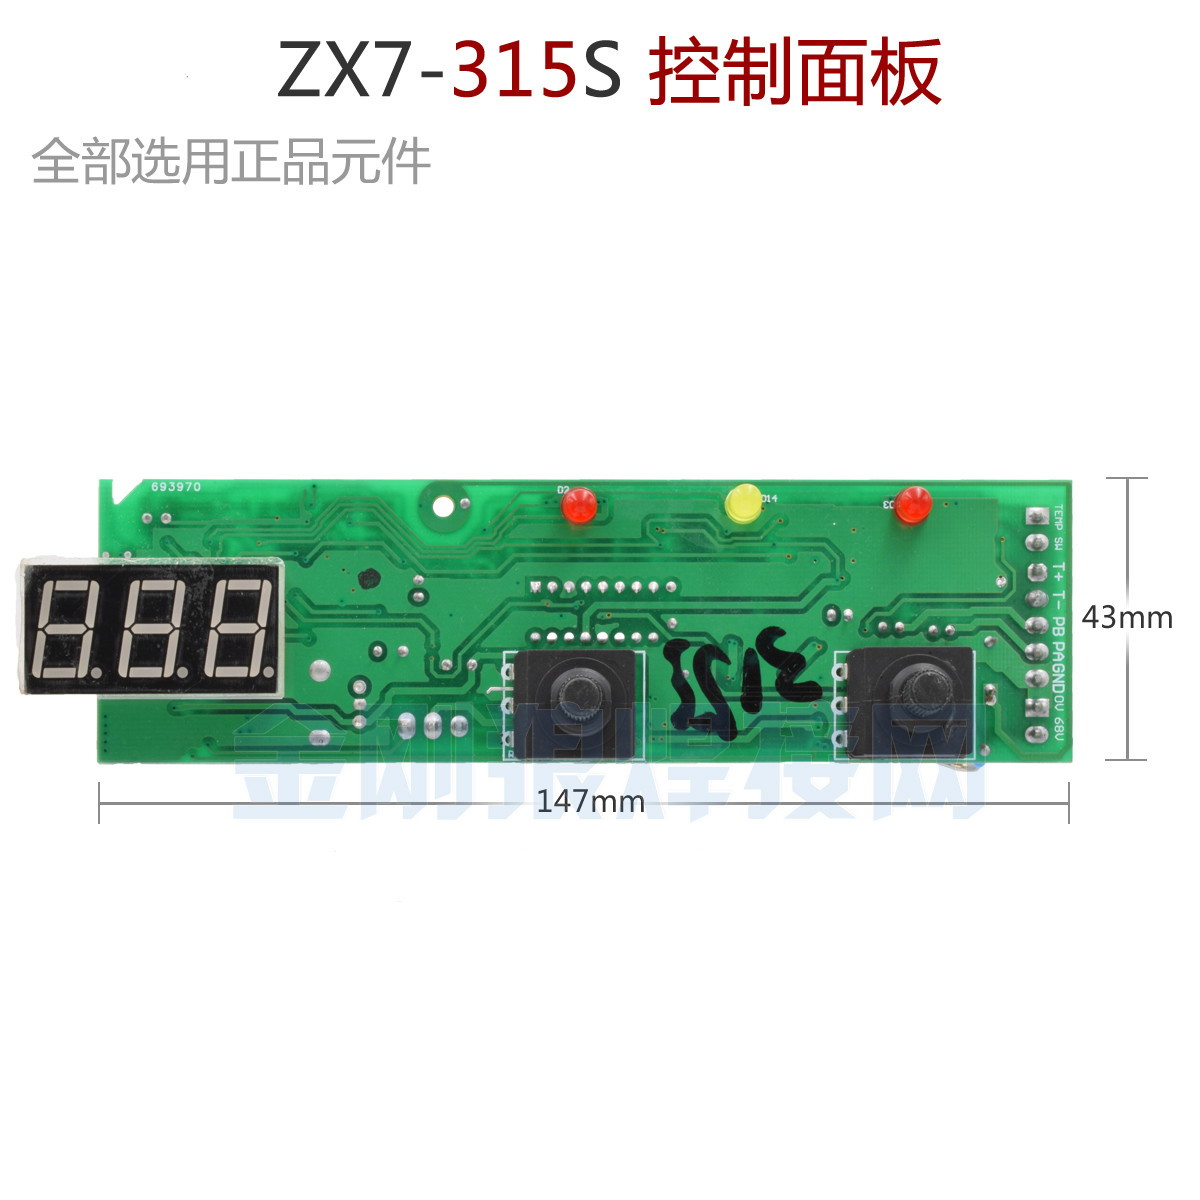 Zx7 315 400 630 Igbt Inverter Welder Control Panel Main Board Circuit Board Home Appliances Air Conditioning Appliance Parts